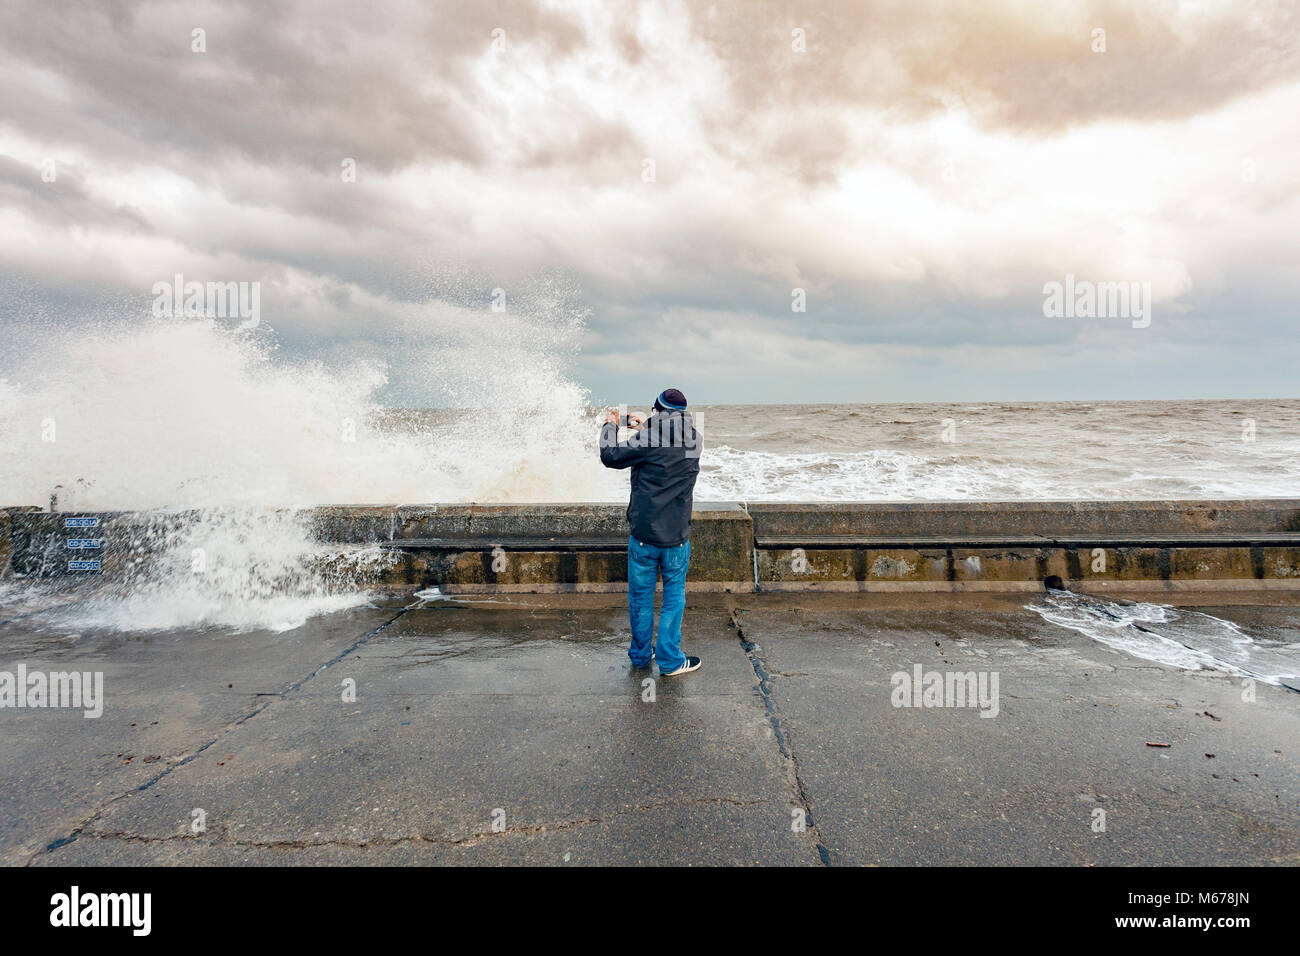 A man taking pictures of the crashing waves on the promenade wall at Colwyn Bay, Wales as a result of the Beast - Stock Image